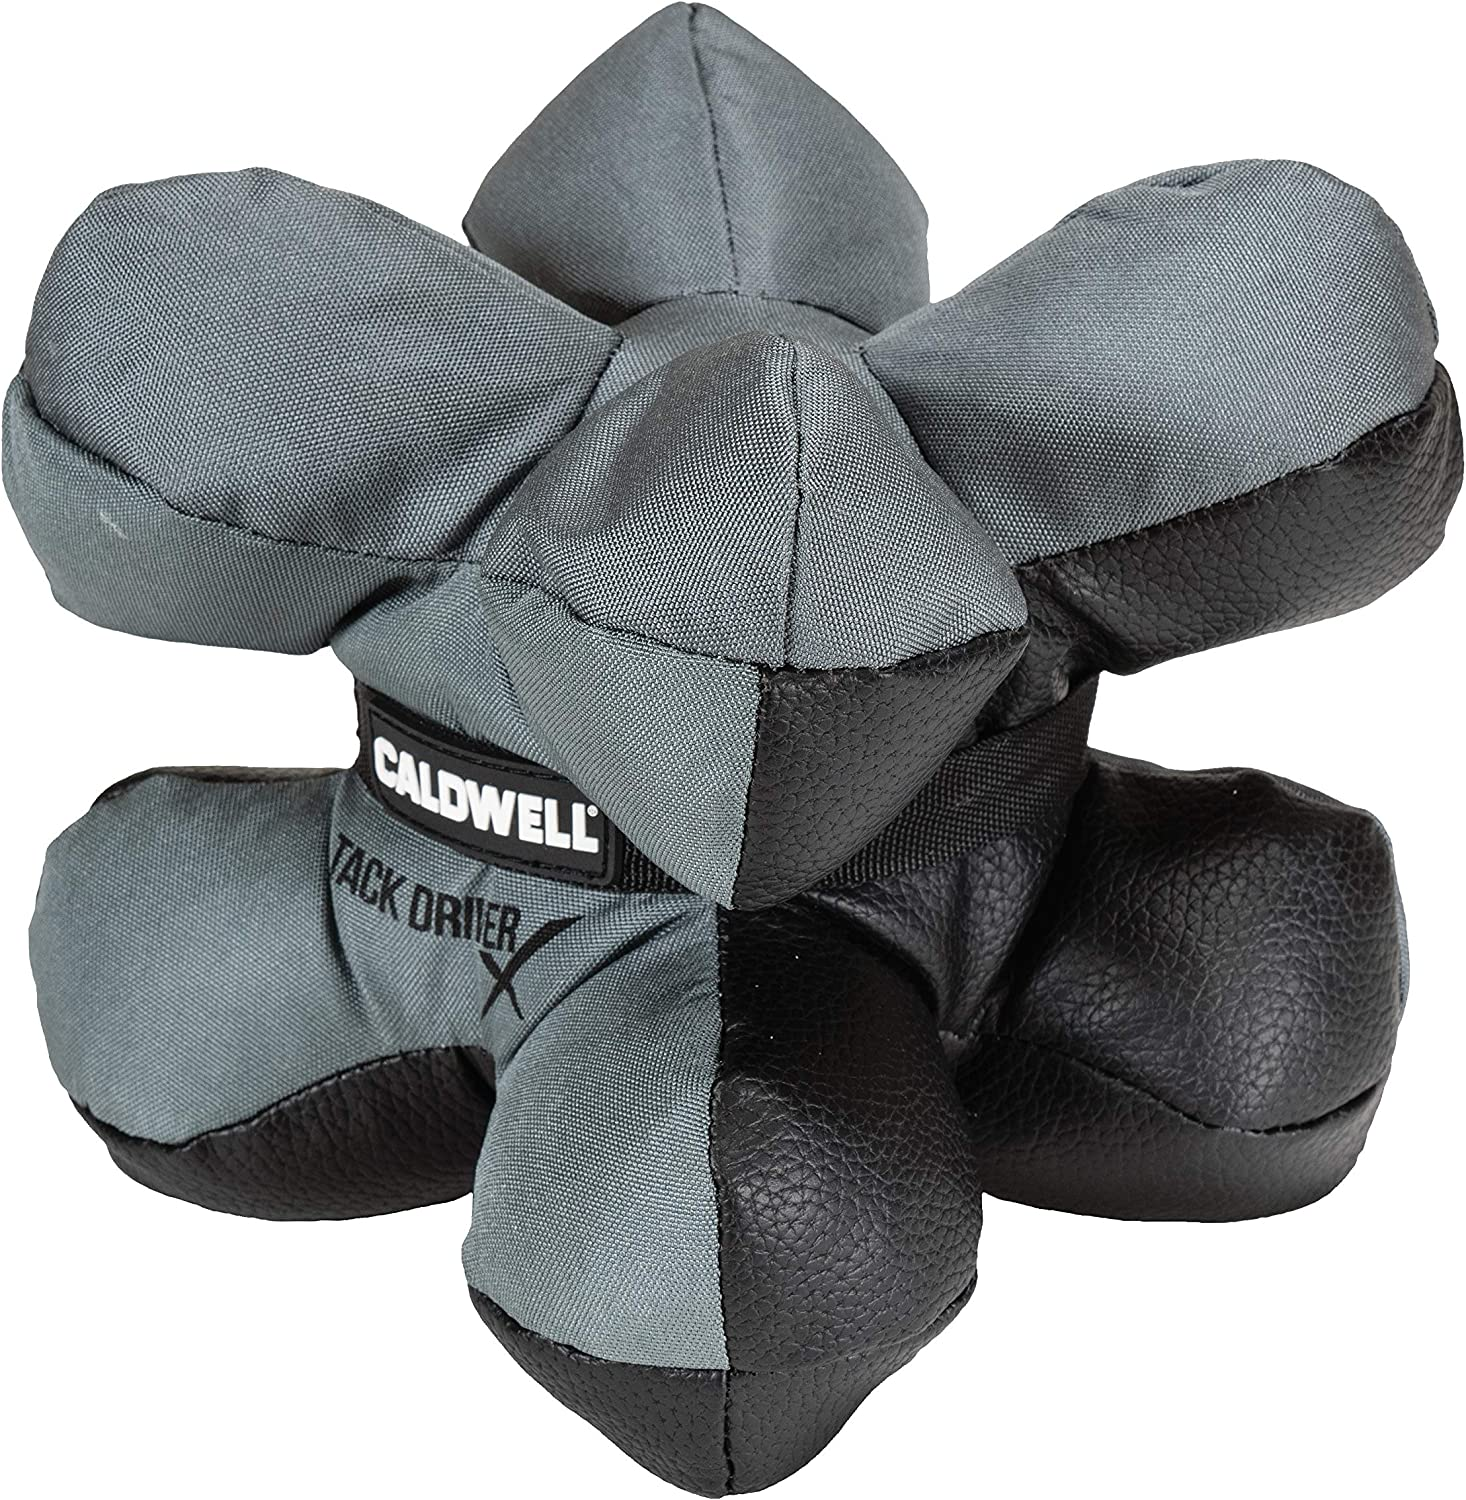 Caldwell Tack Driver X Bags with Durable and Non-Absorbent Construction for Use While Hunting or Indoor and Outdoor Competition Shooting at The Range